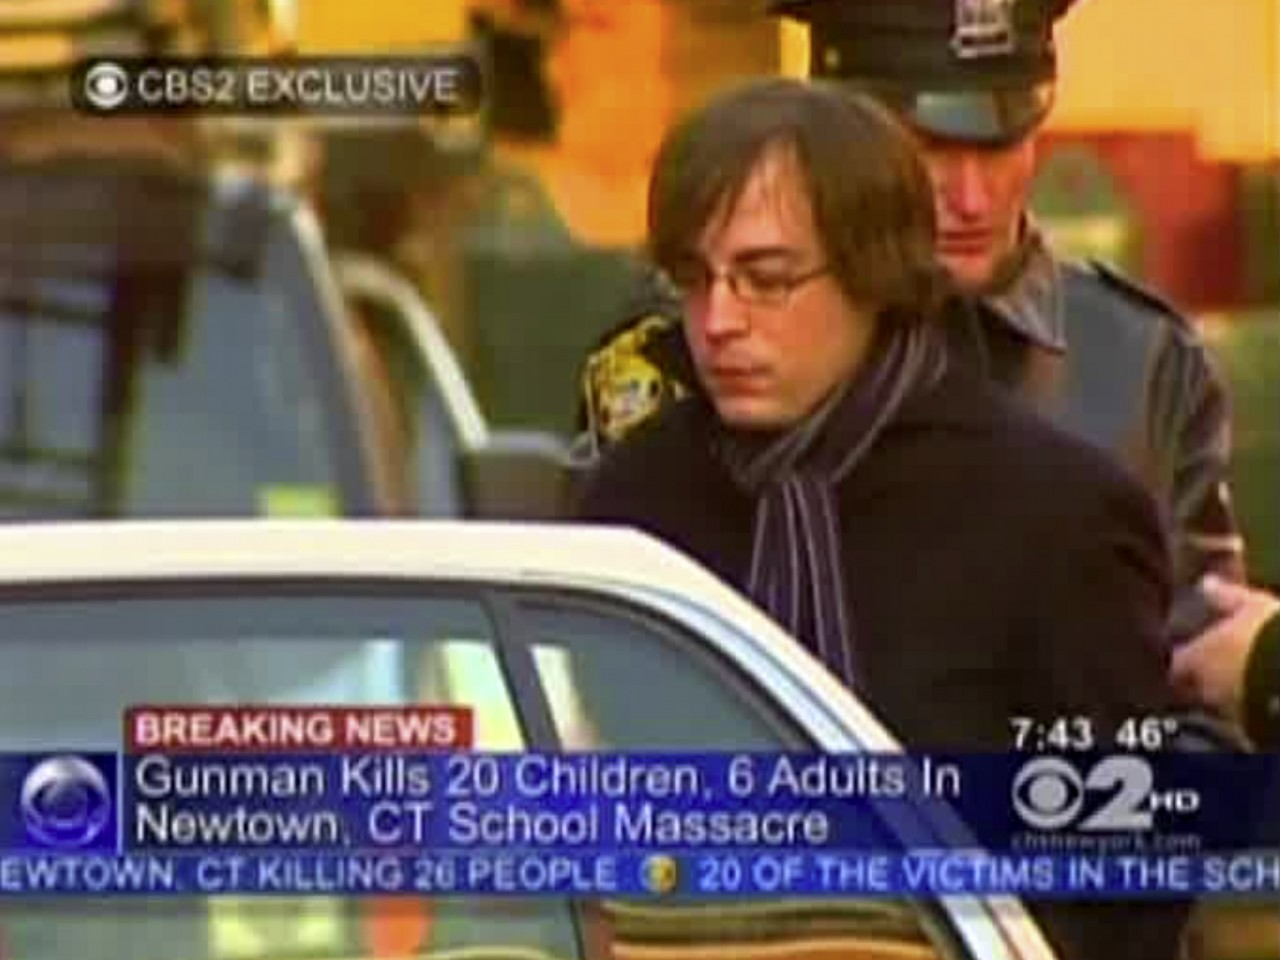 Sandy Hook massacre: Evidence of official foreknowledge?